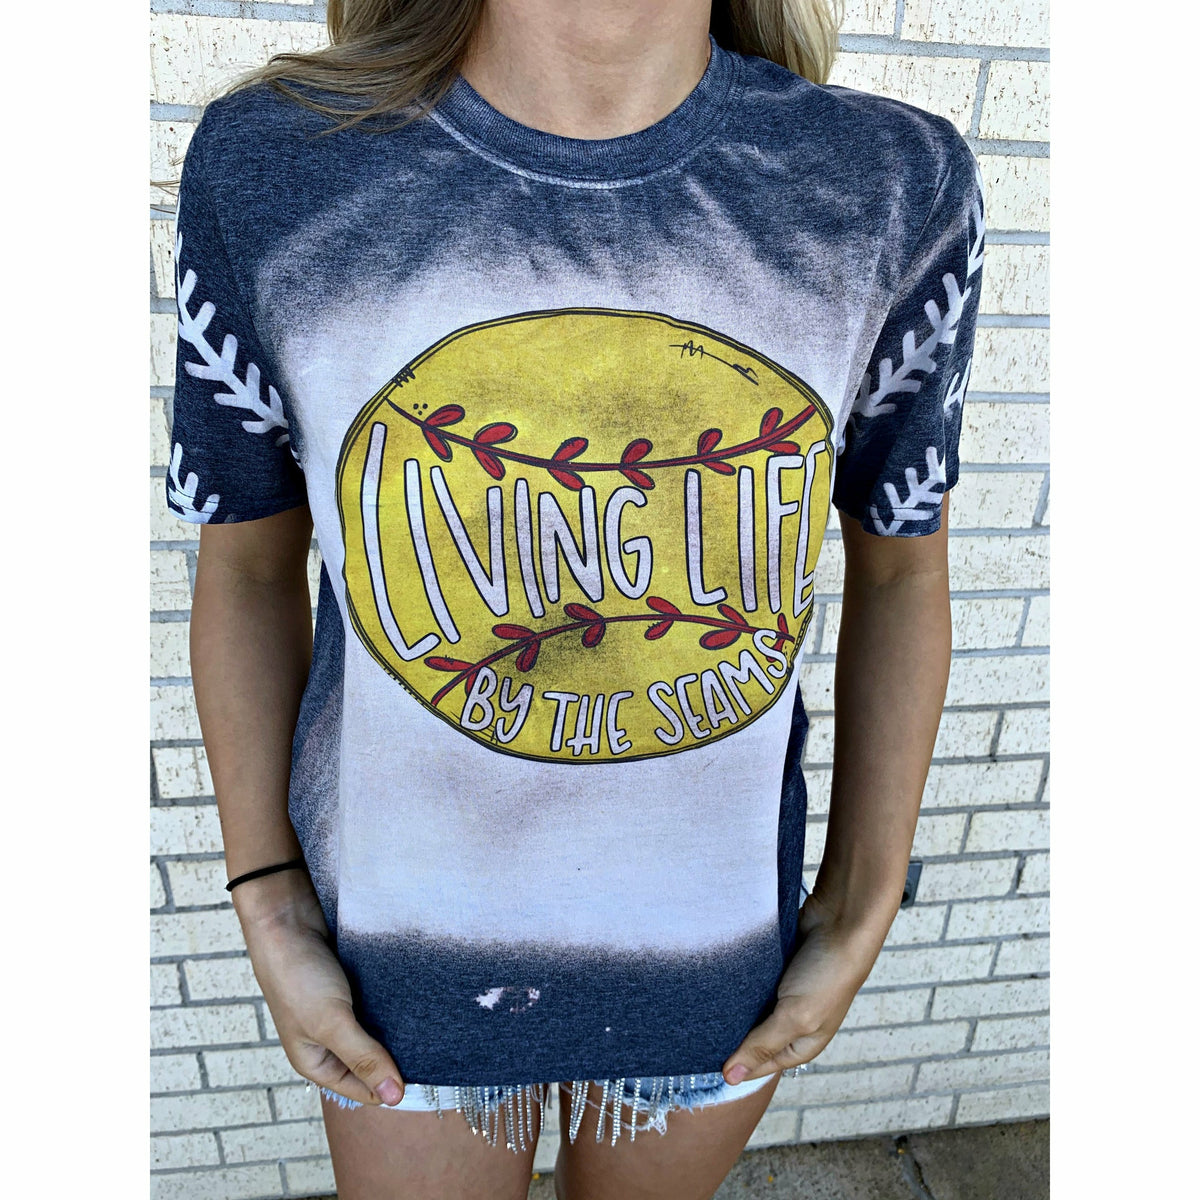 Living Life by the seams ( softball or baseball) tee